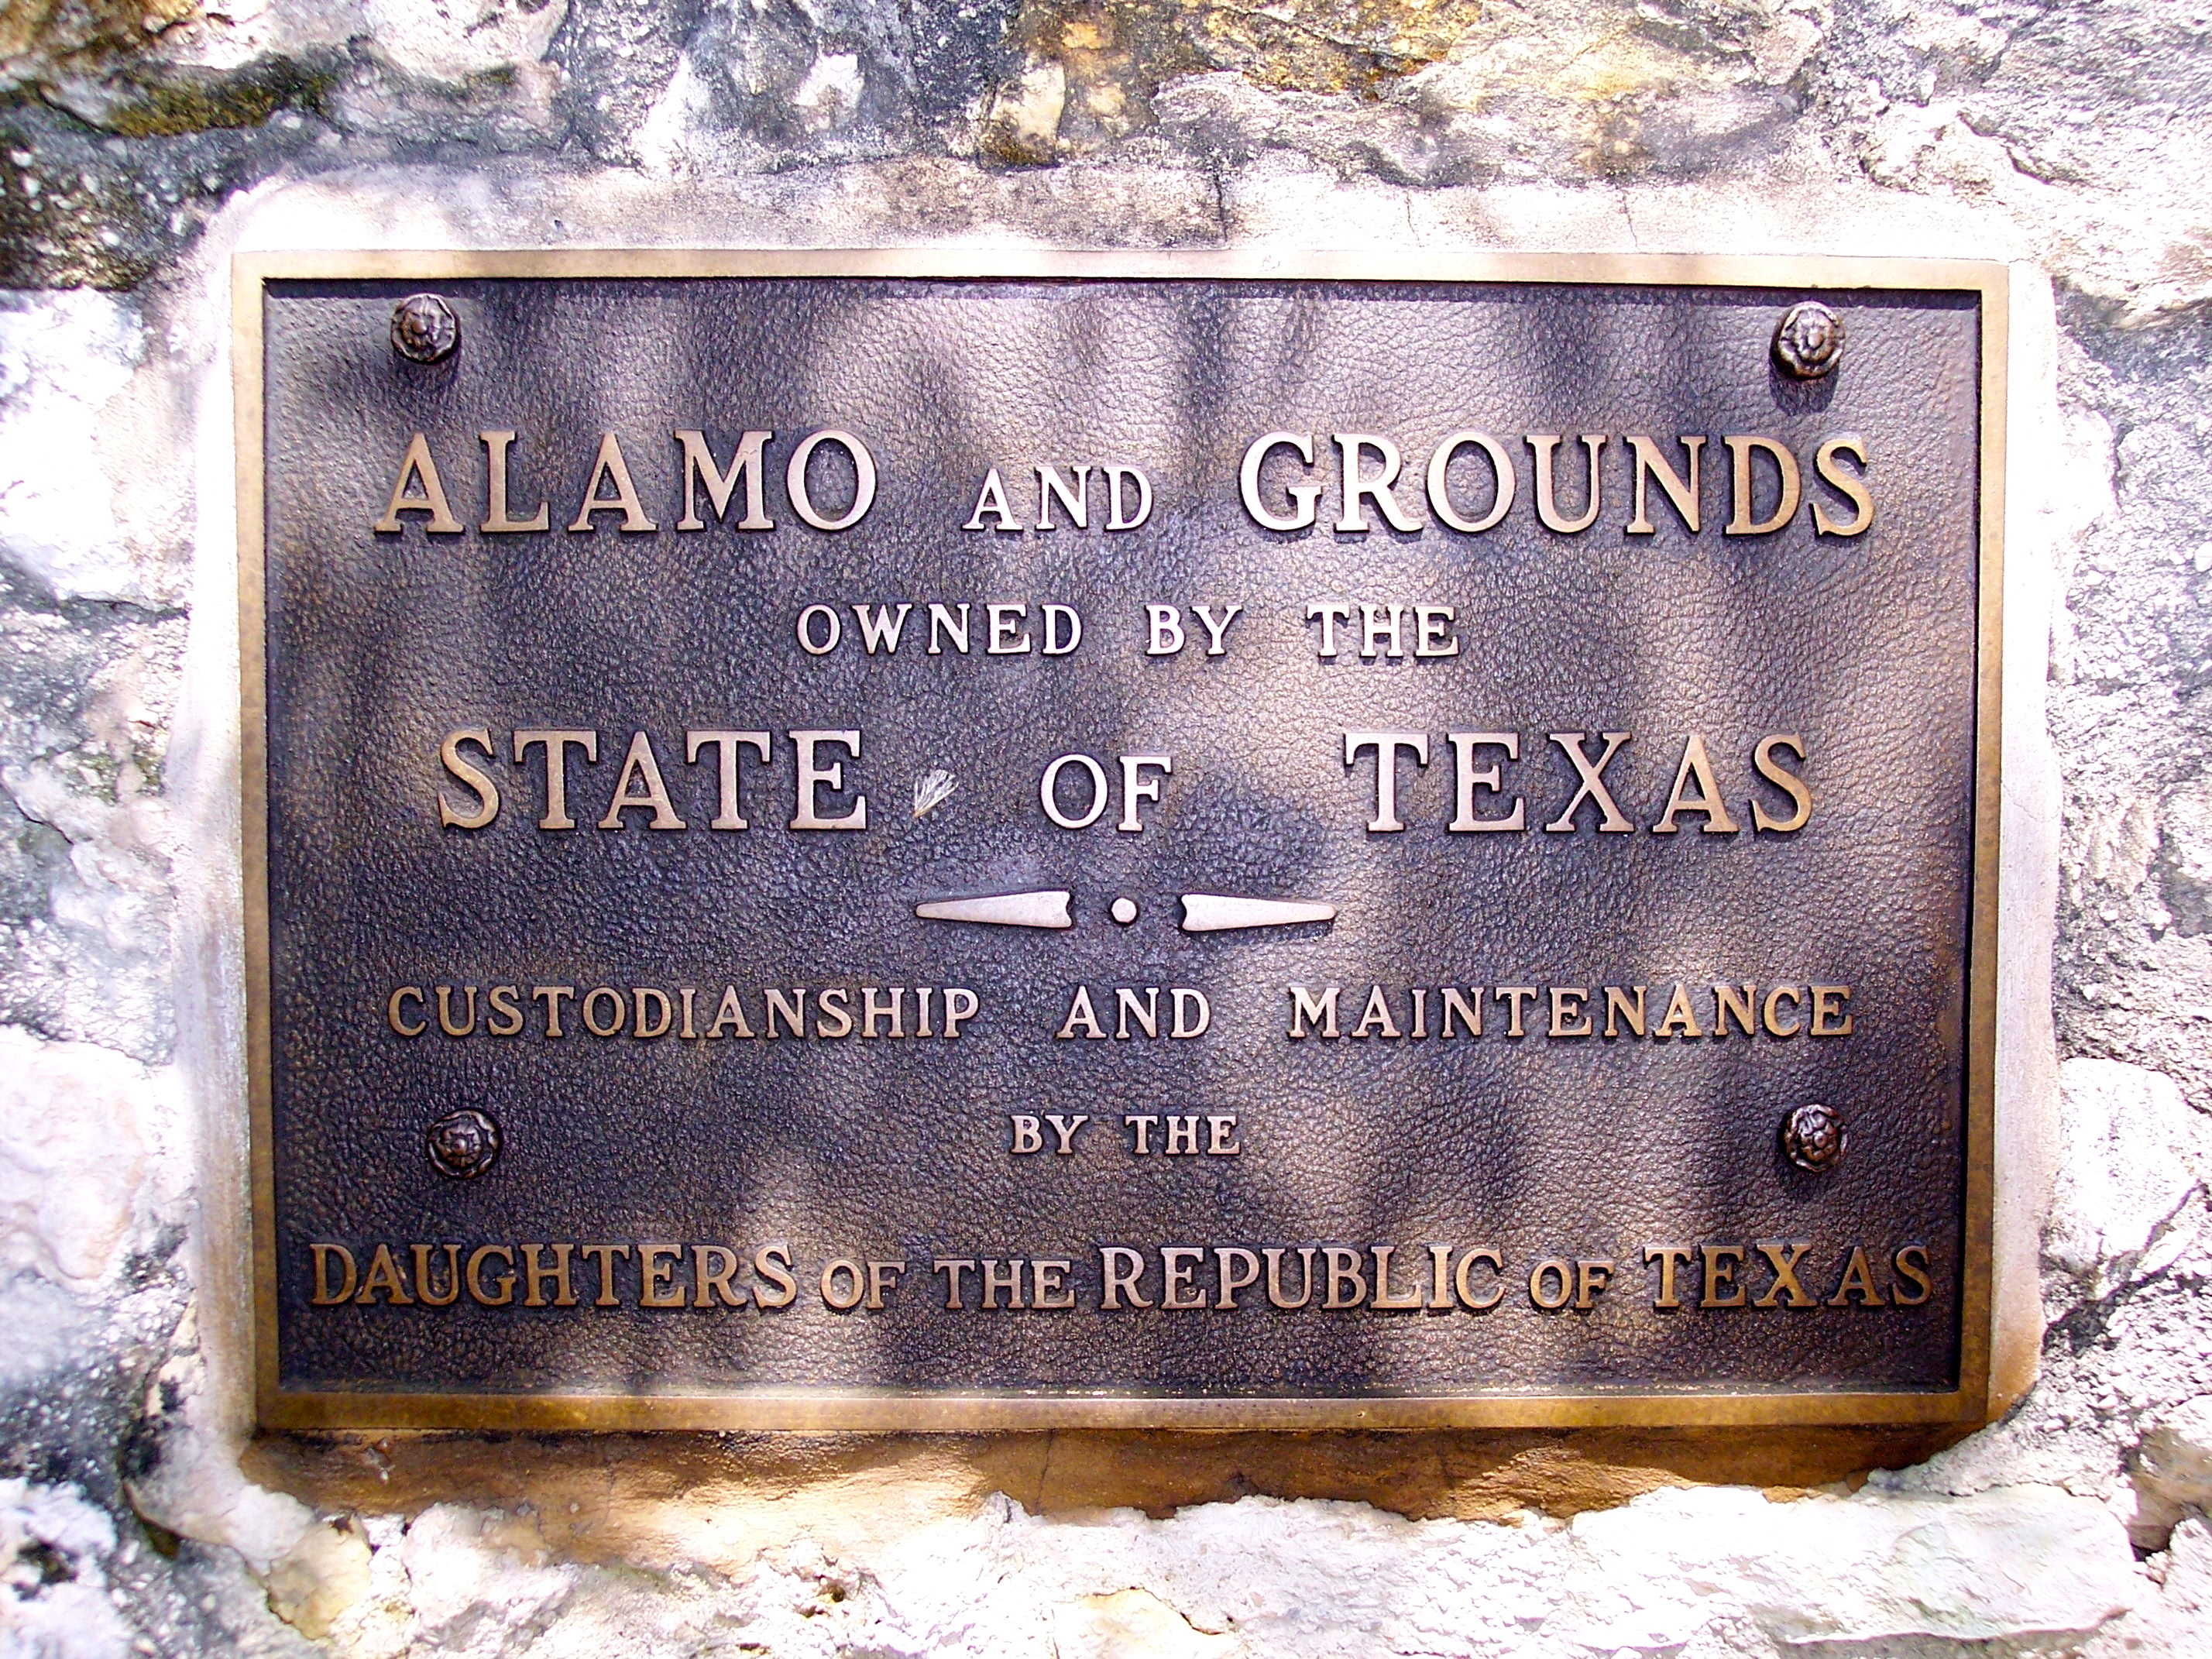 http://upload.wikimedia.org/wikipedia/commons/b/b6/Plaque_at_the_Alamo,_San_Antonio,_Texas,_June_4,_2007.JPG